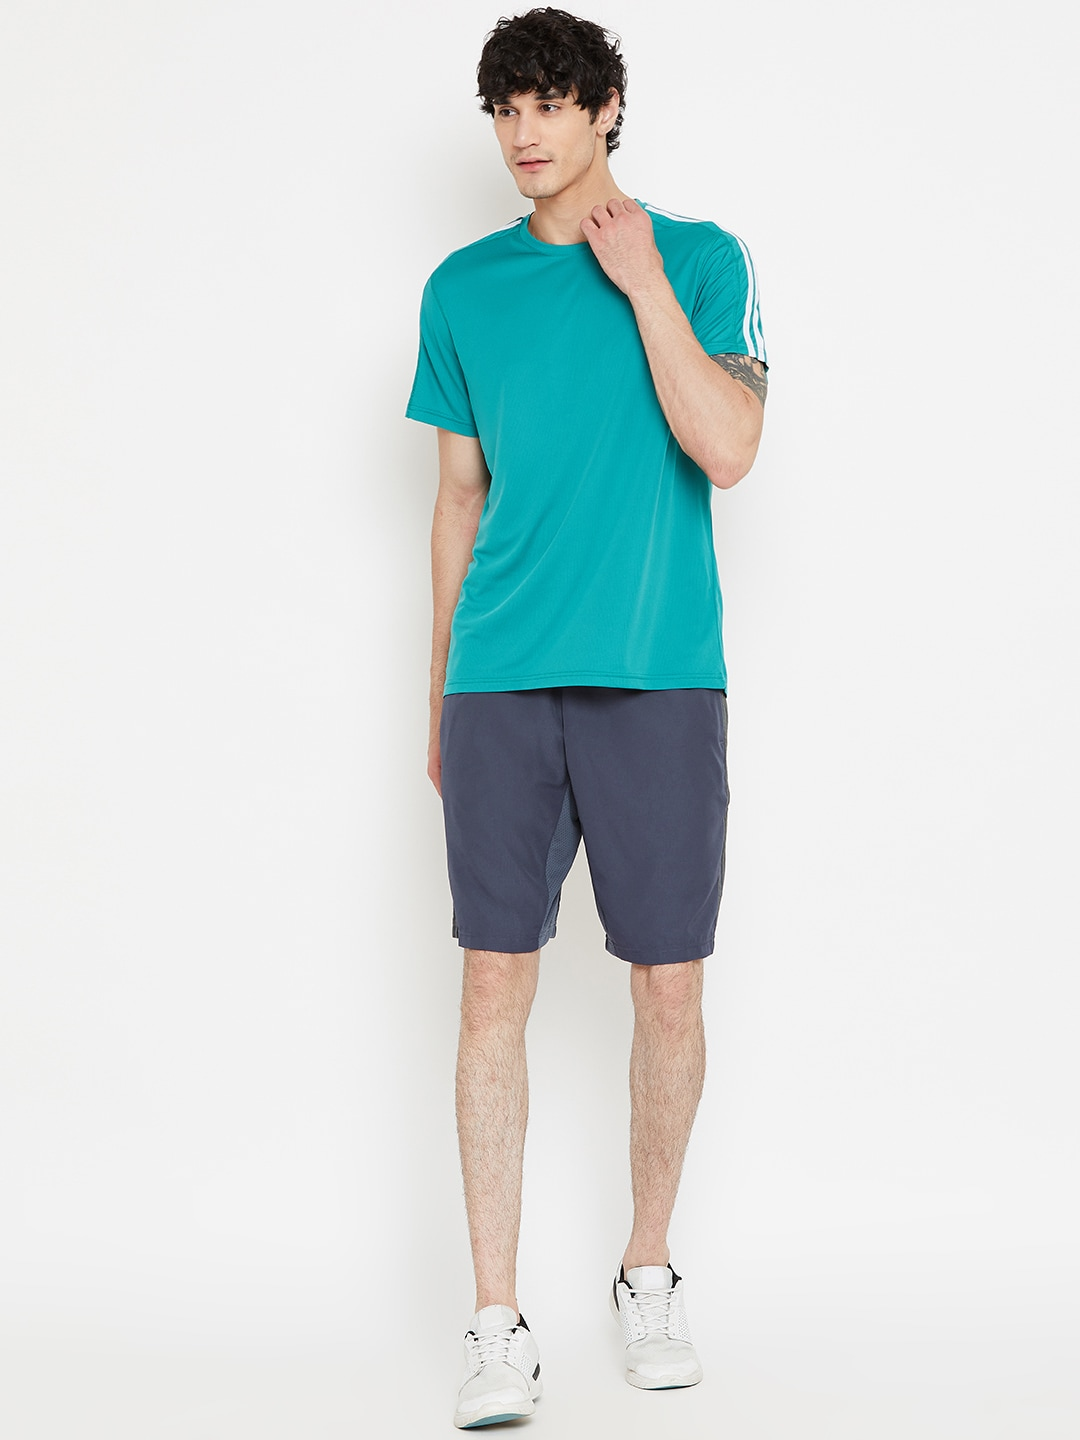 ADIDAS Originals Men Colourblocked Shorts